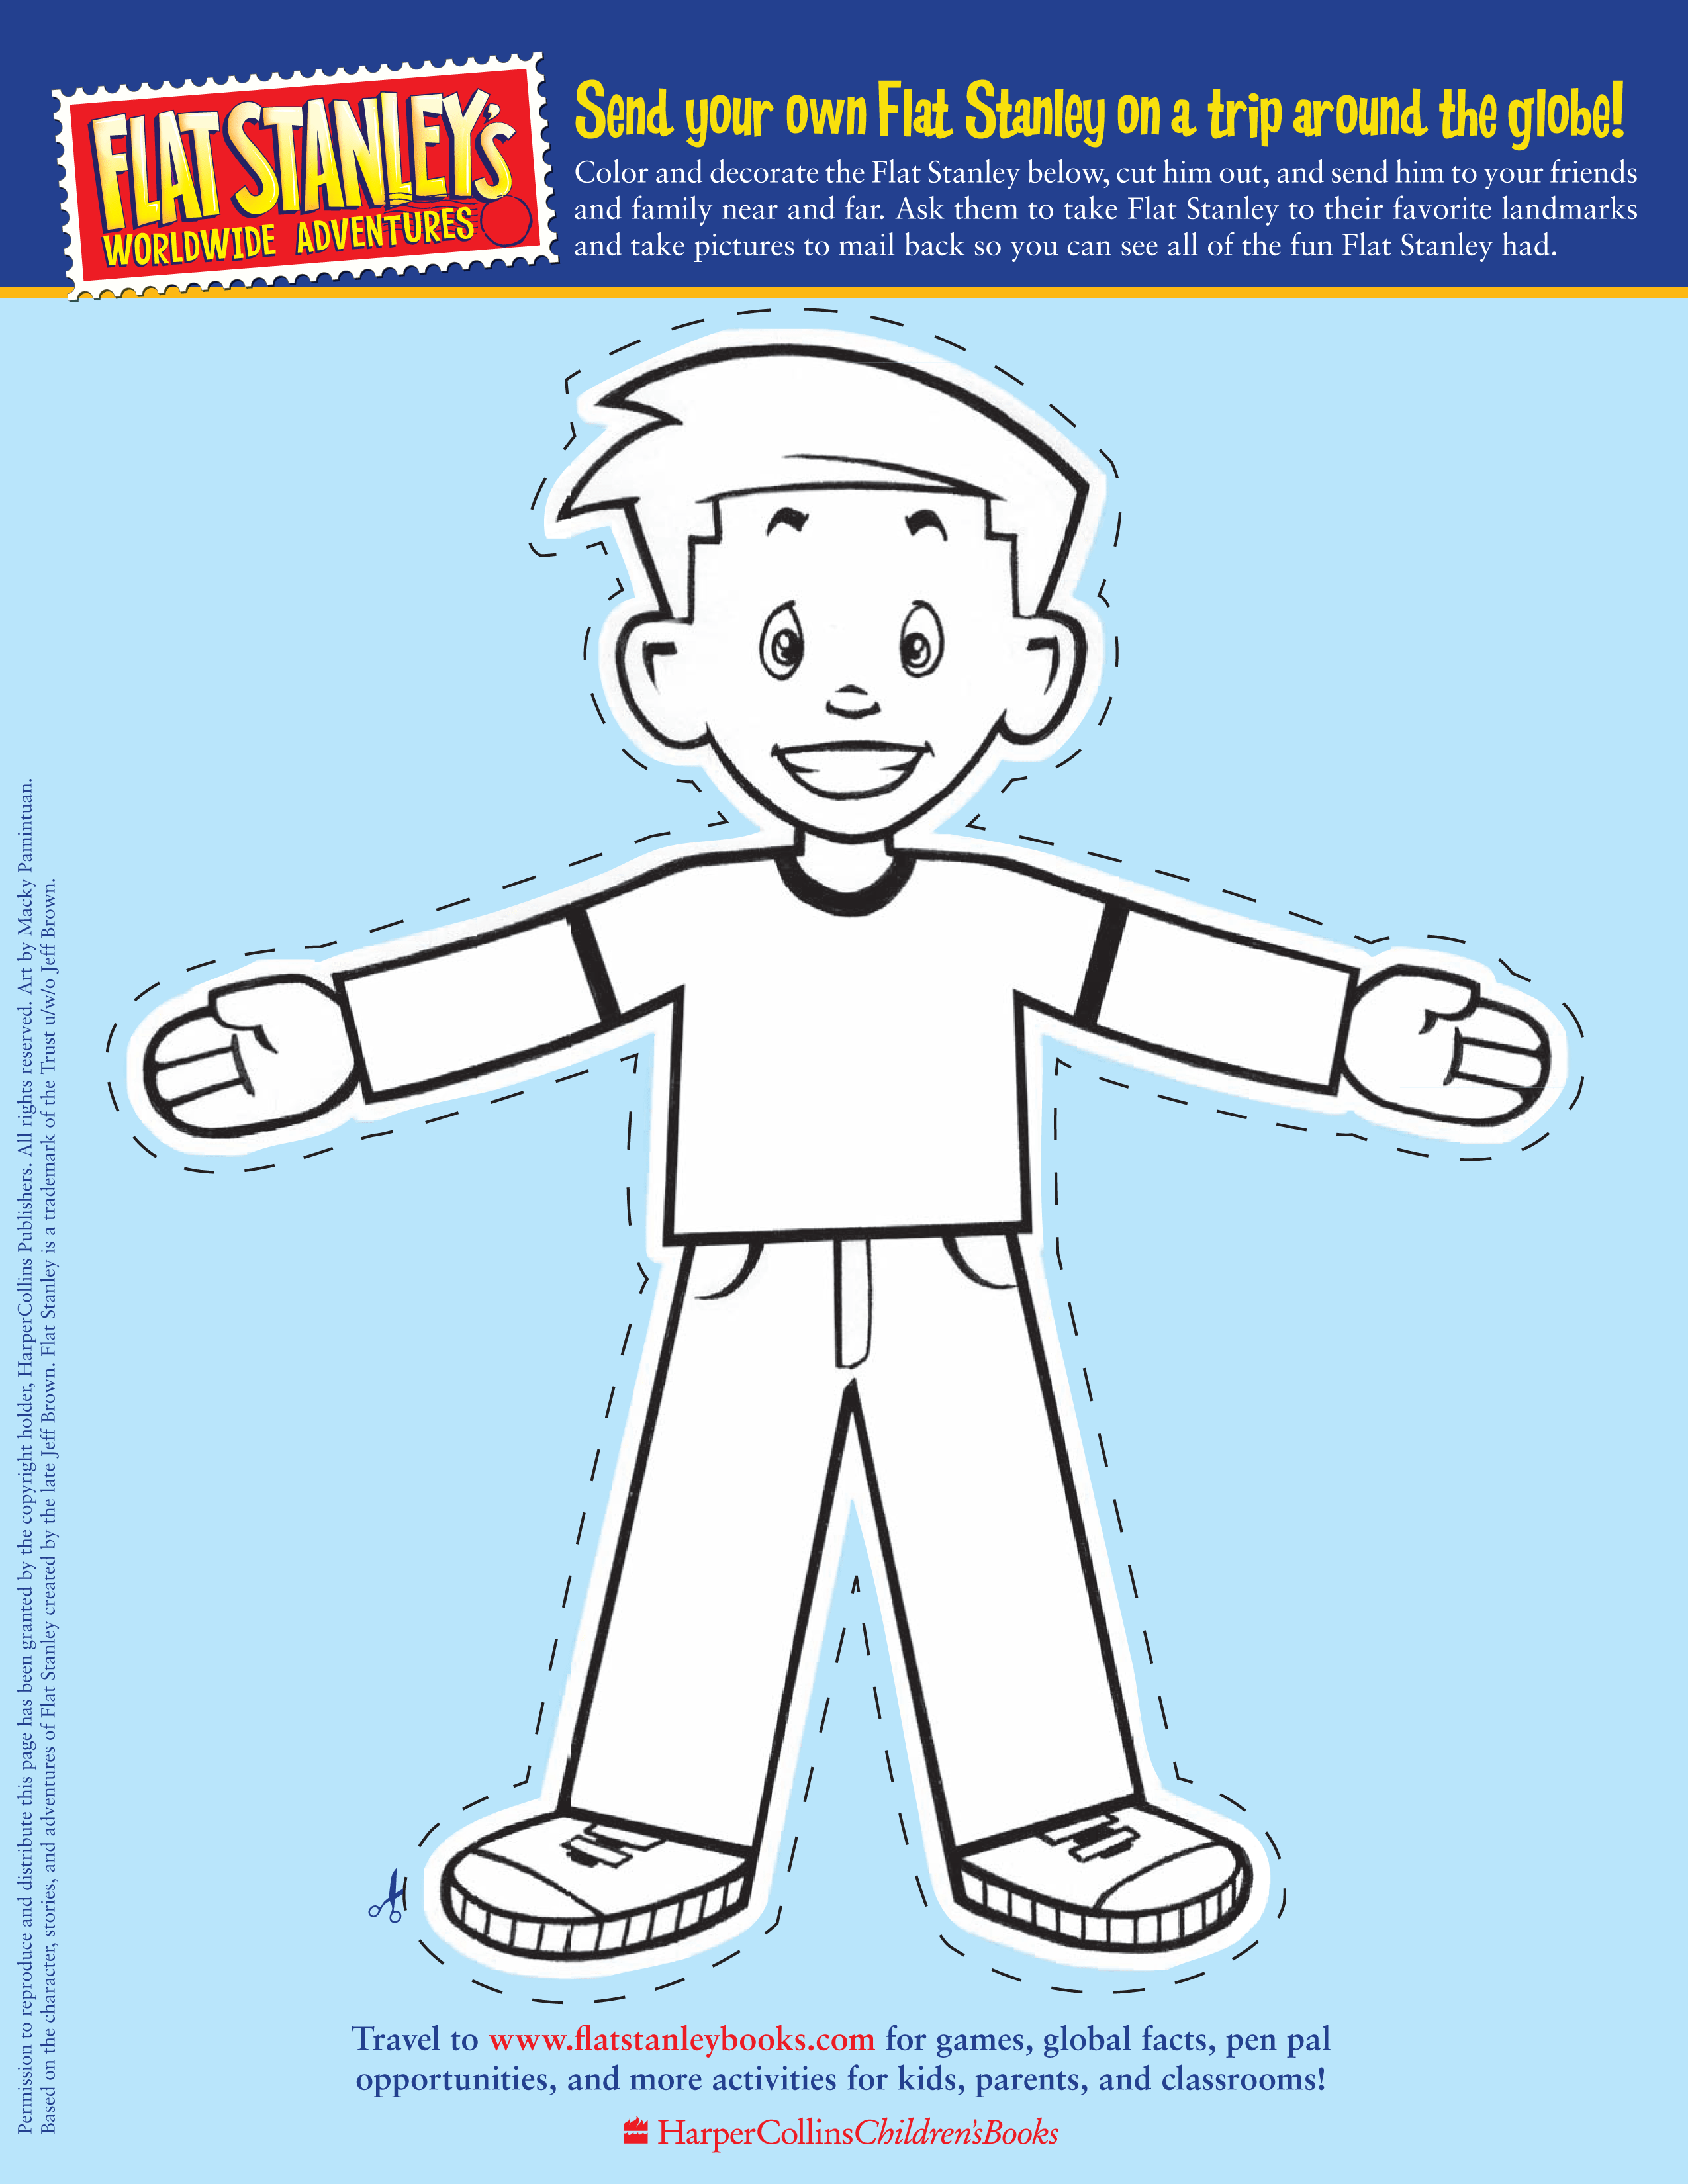 picture relating to Flat Stanley Printable Templates known as Flat Stanleys template towards the Flat Stanley Guides web-site